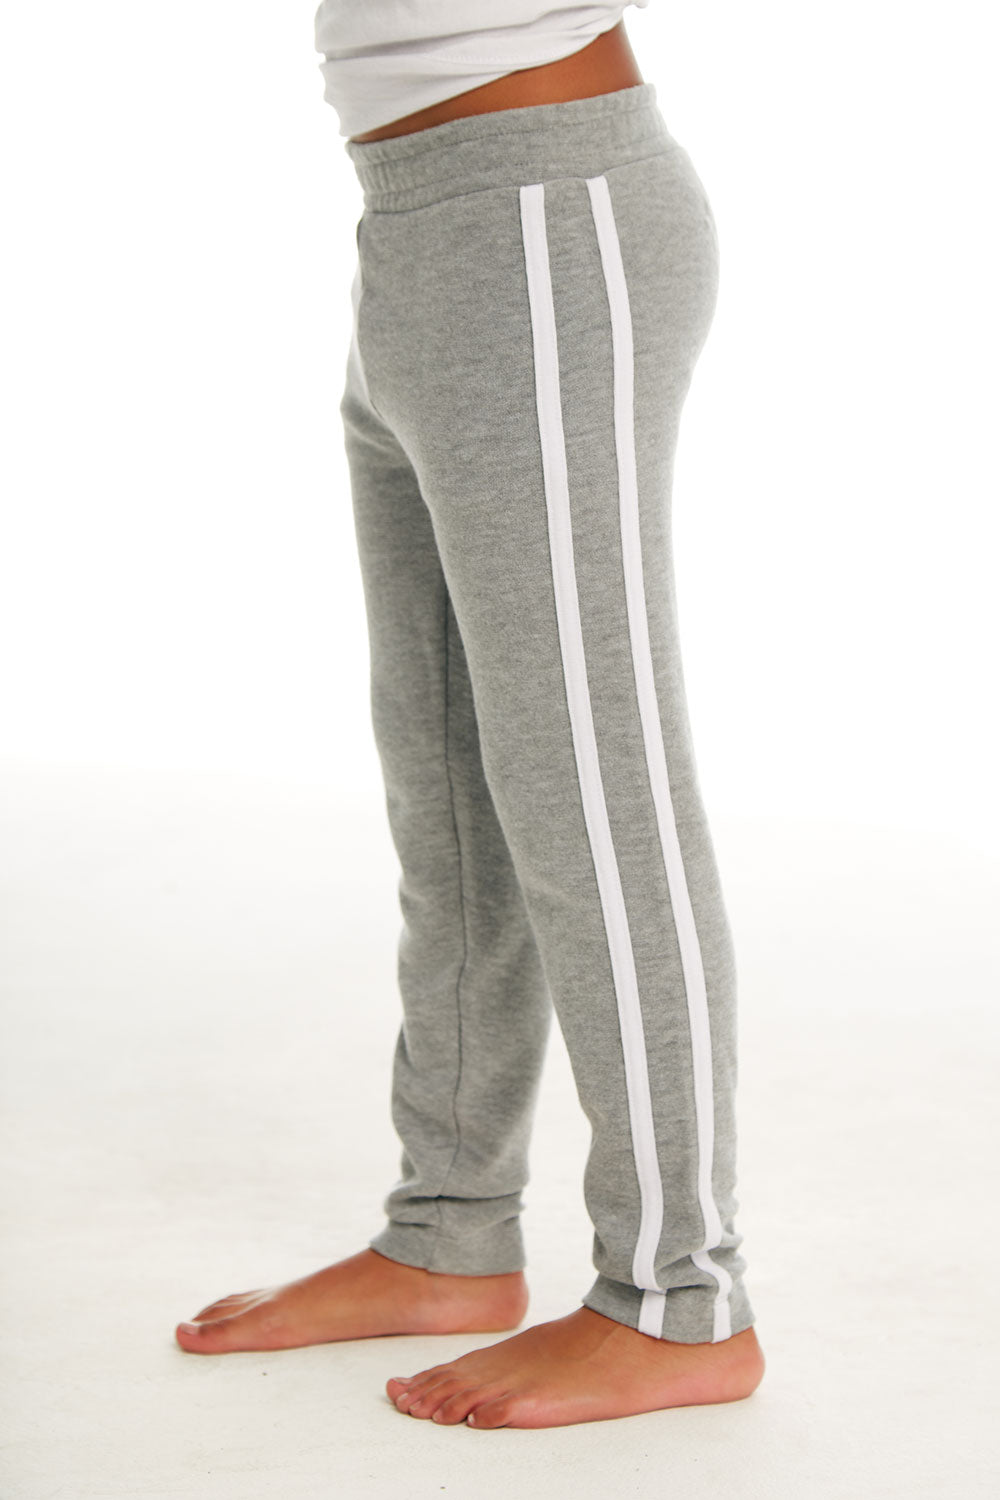 Boys Cozy Knit Track Pant, BOYS, chaserbrand.com,chaser clothing,chaser apparel,chaser los angeles